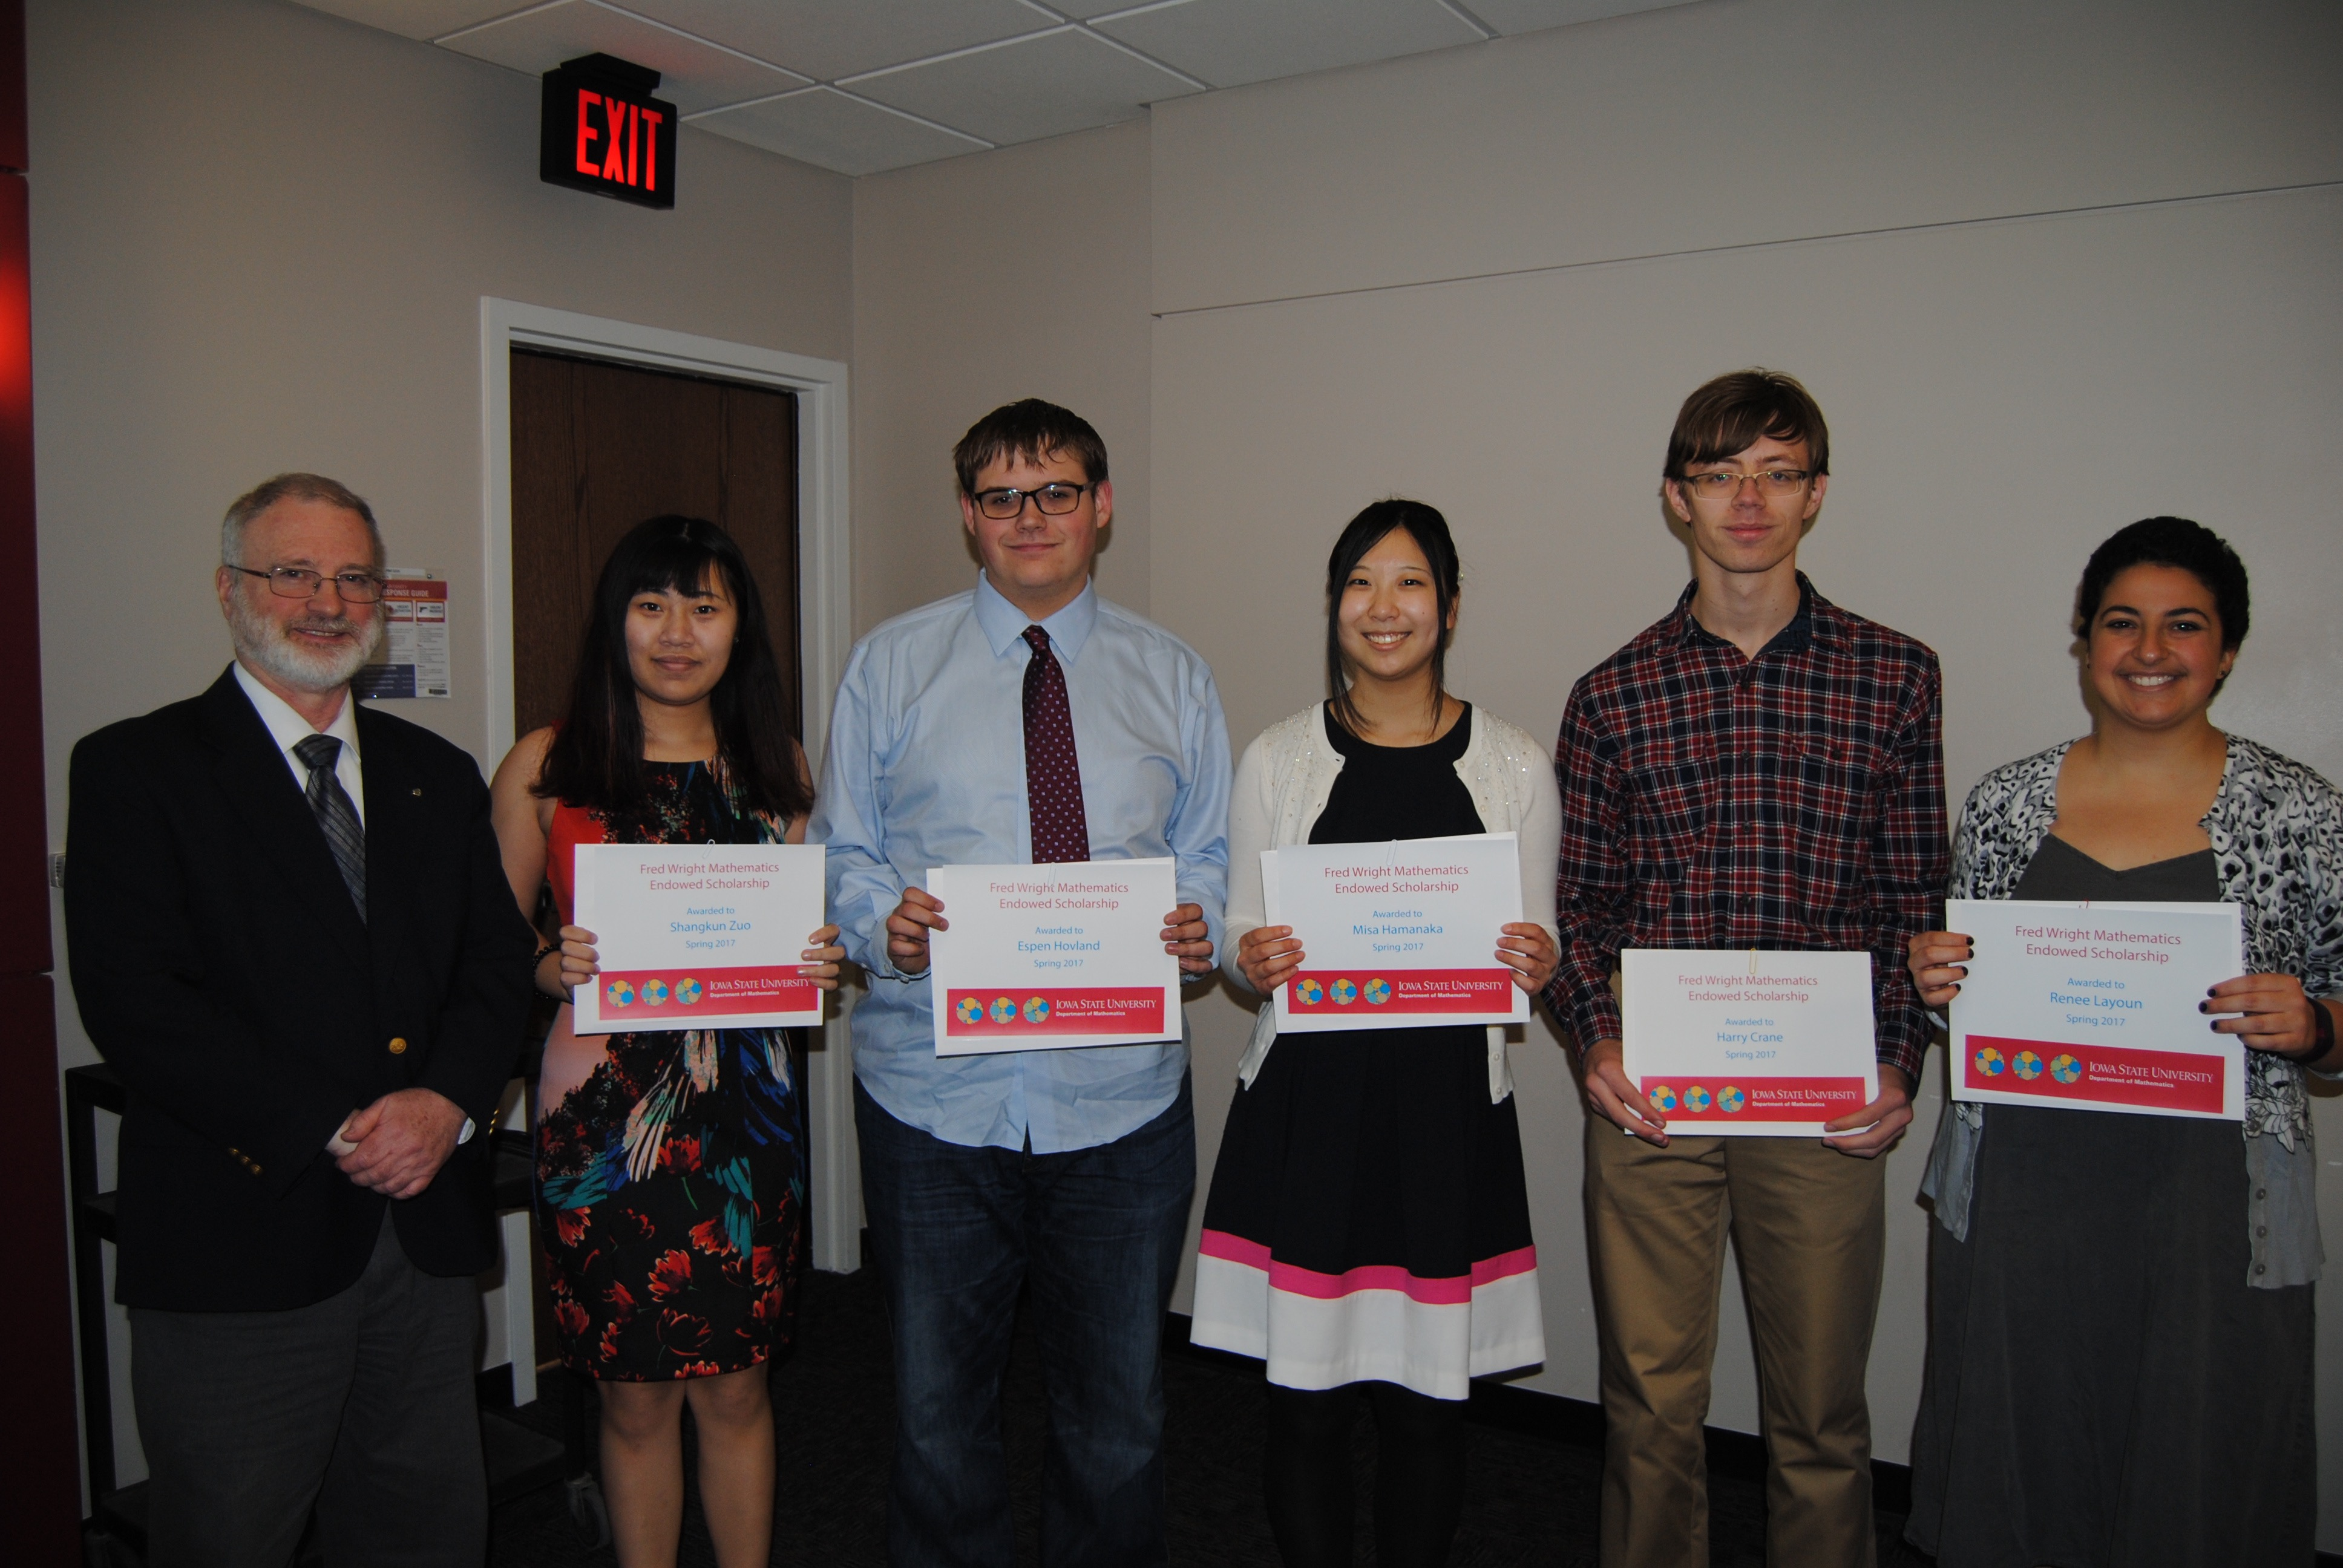 James Wilson, director of undergraduate education, presents undergraduate students Shangkun Zuo, Espen Hovland, Misa Hamanaka, Harry Crane, and Renee Layoun with Fred Wright Mathematics Scholarships.